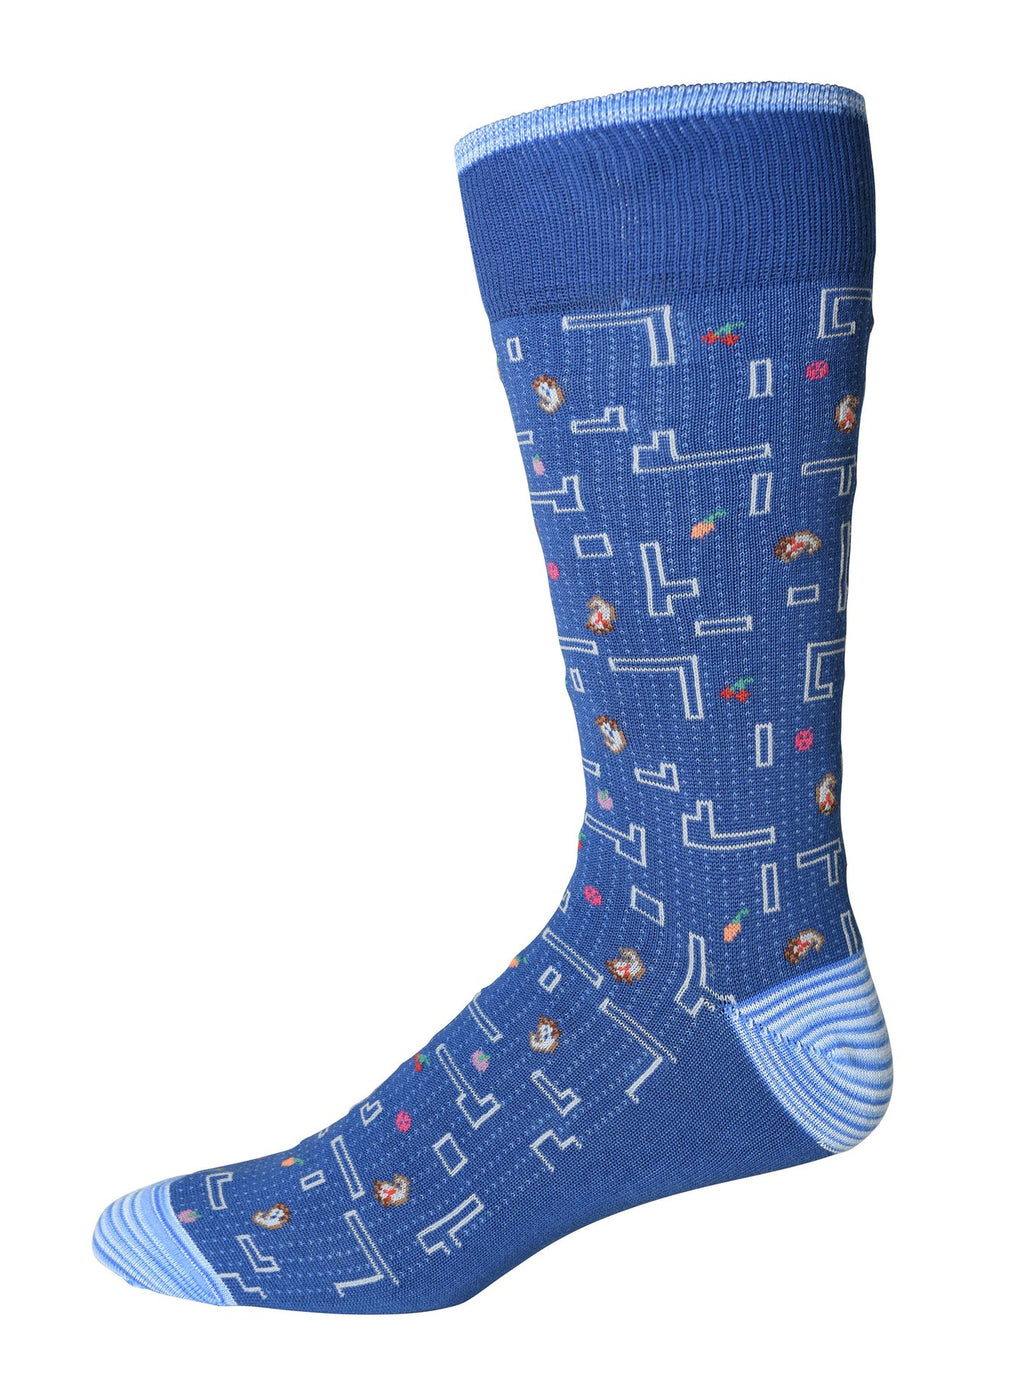 Robert Graham Socks - Victory Lane Blue